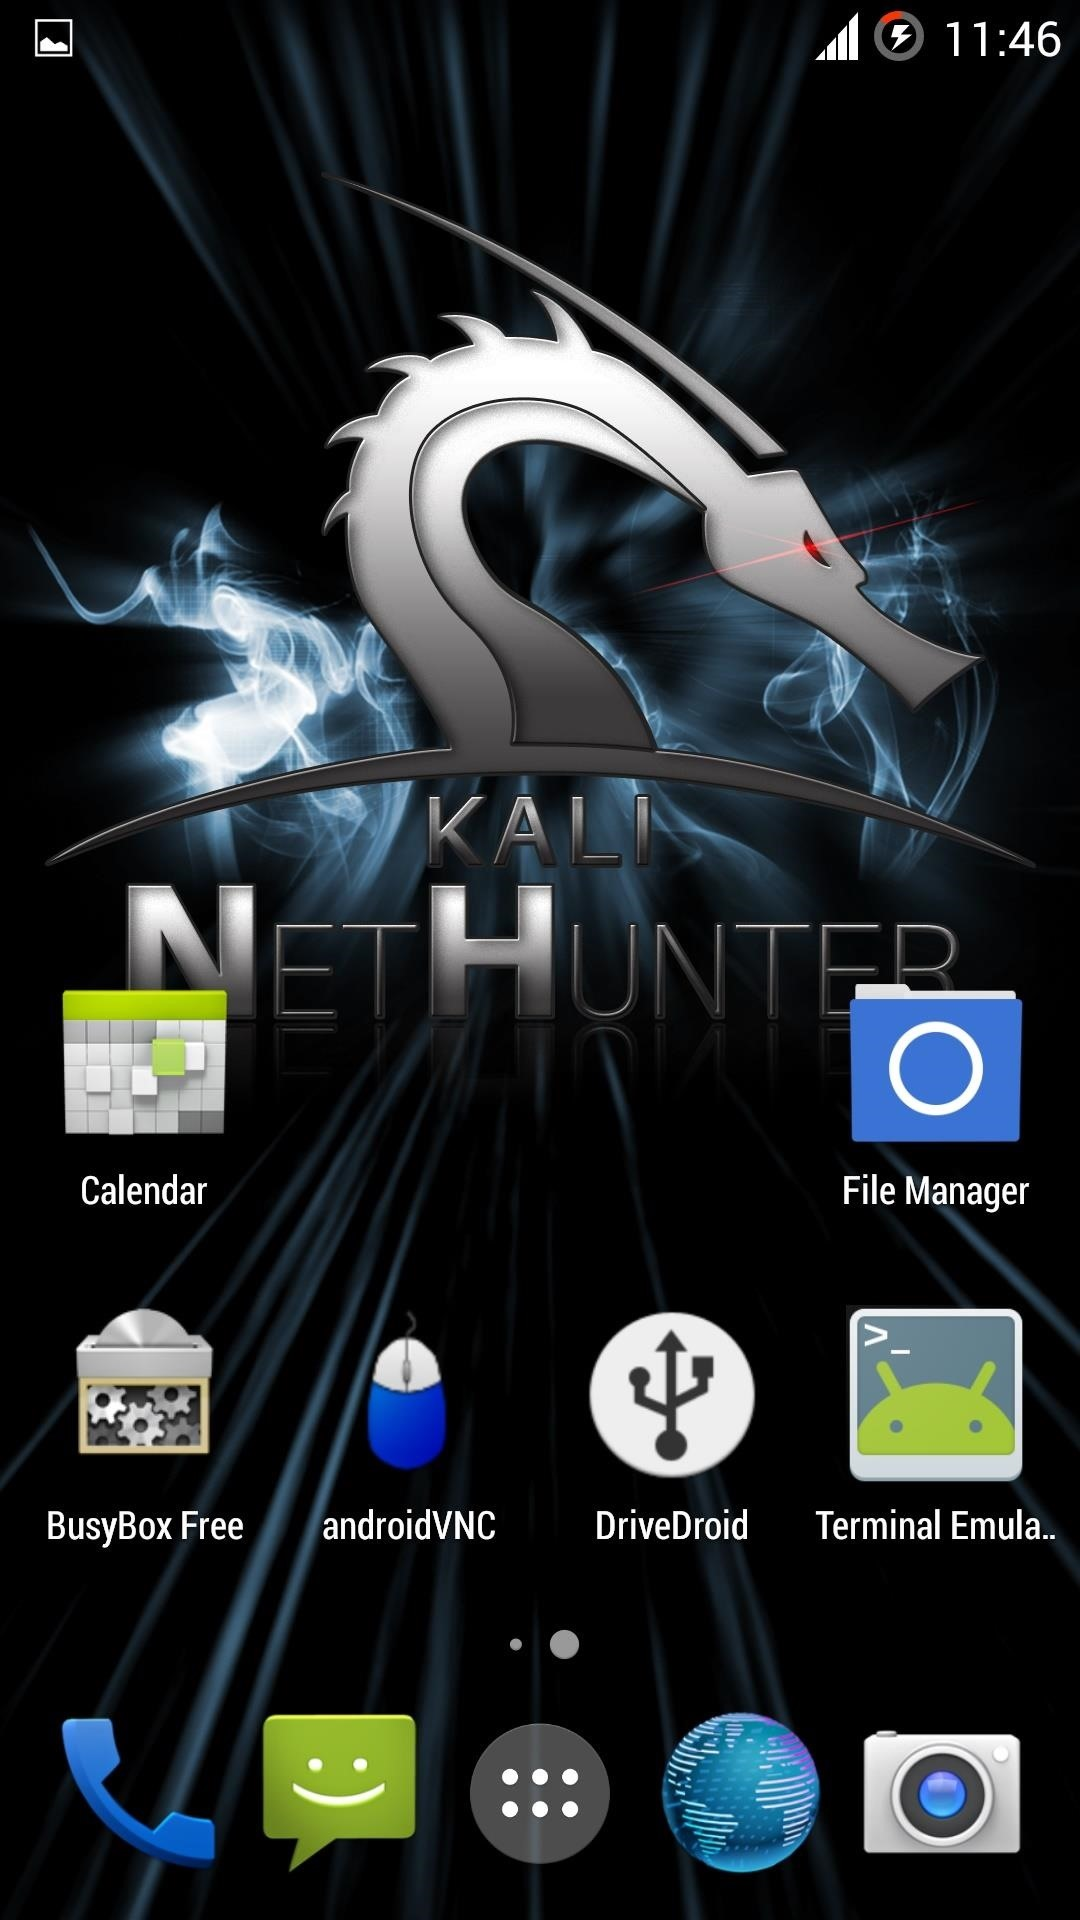 How to Flash Kali NetHunter on OnePlus and Nexus Devices